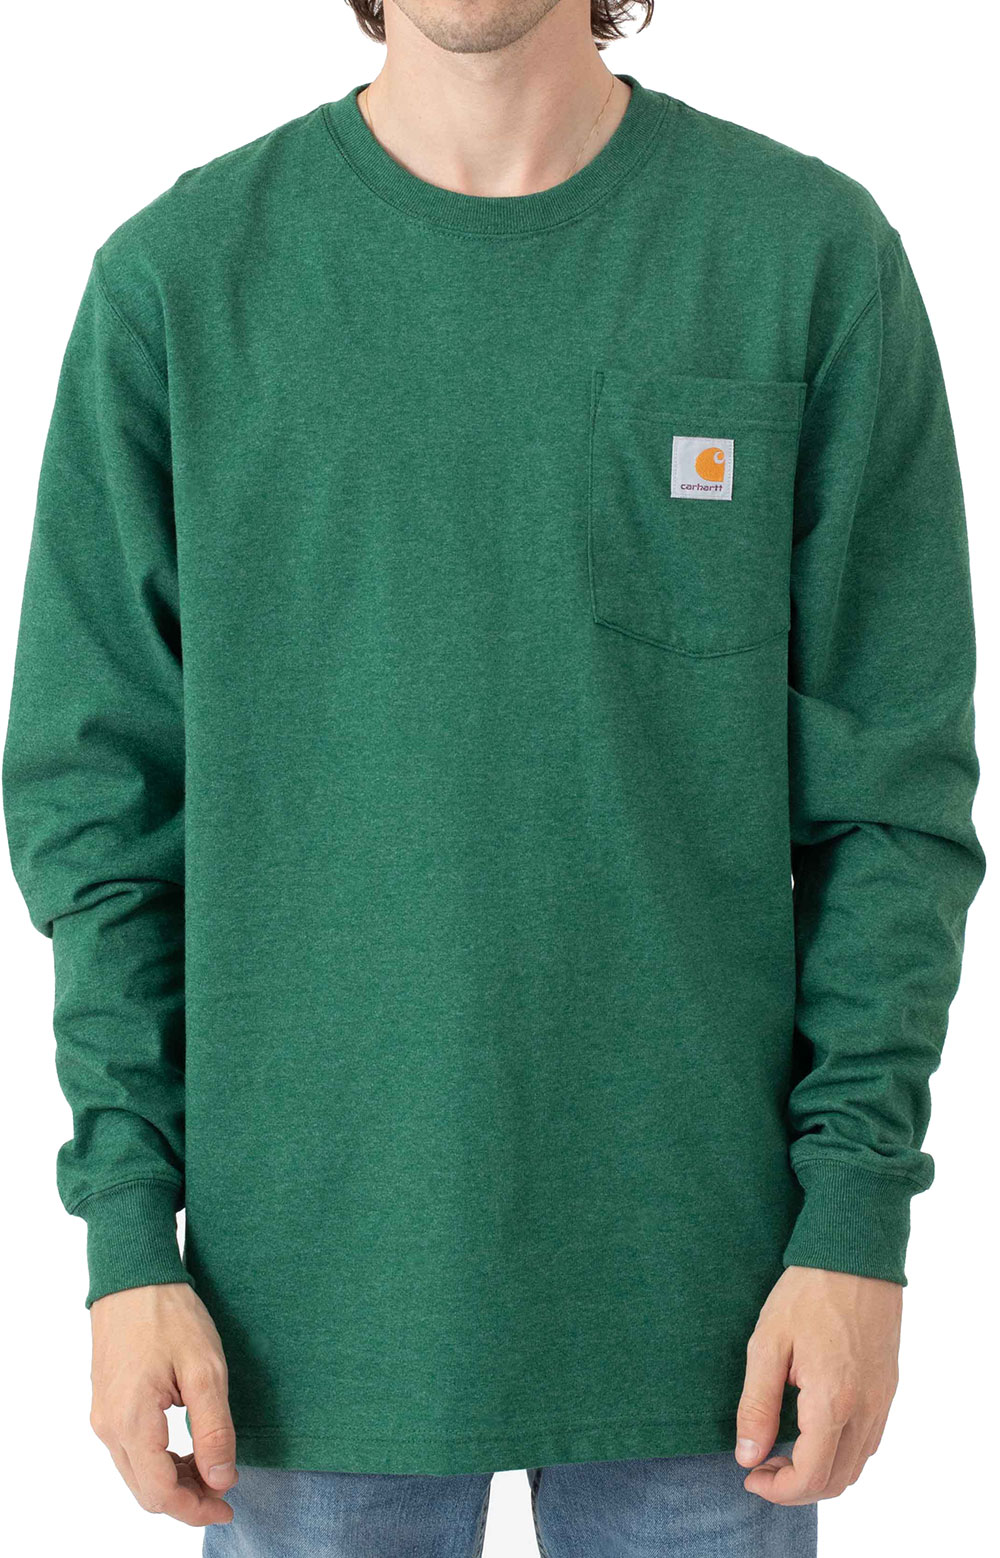 (104896) Loose Fit Heavyweight L/S Pocket Antler Graphic T-Shirt - North Woods Heather  2